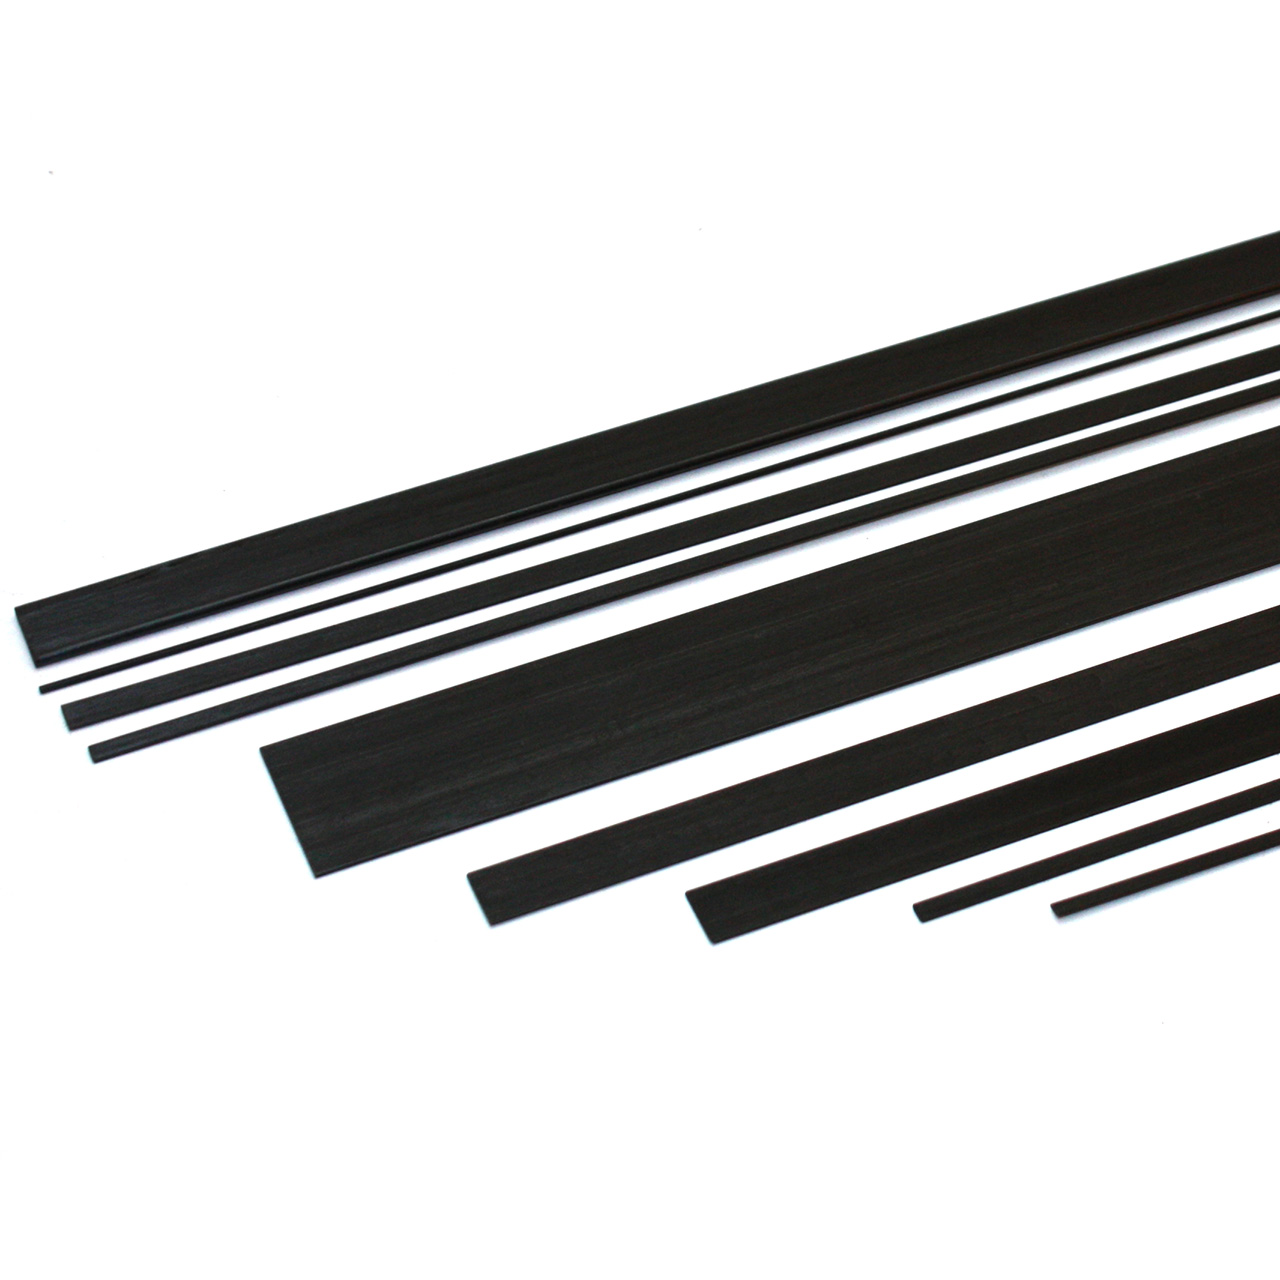 Carbon Fibre Flat Strip